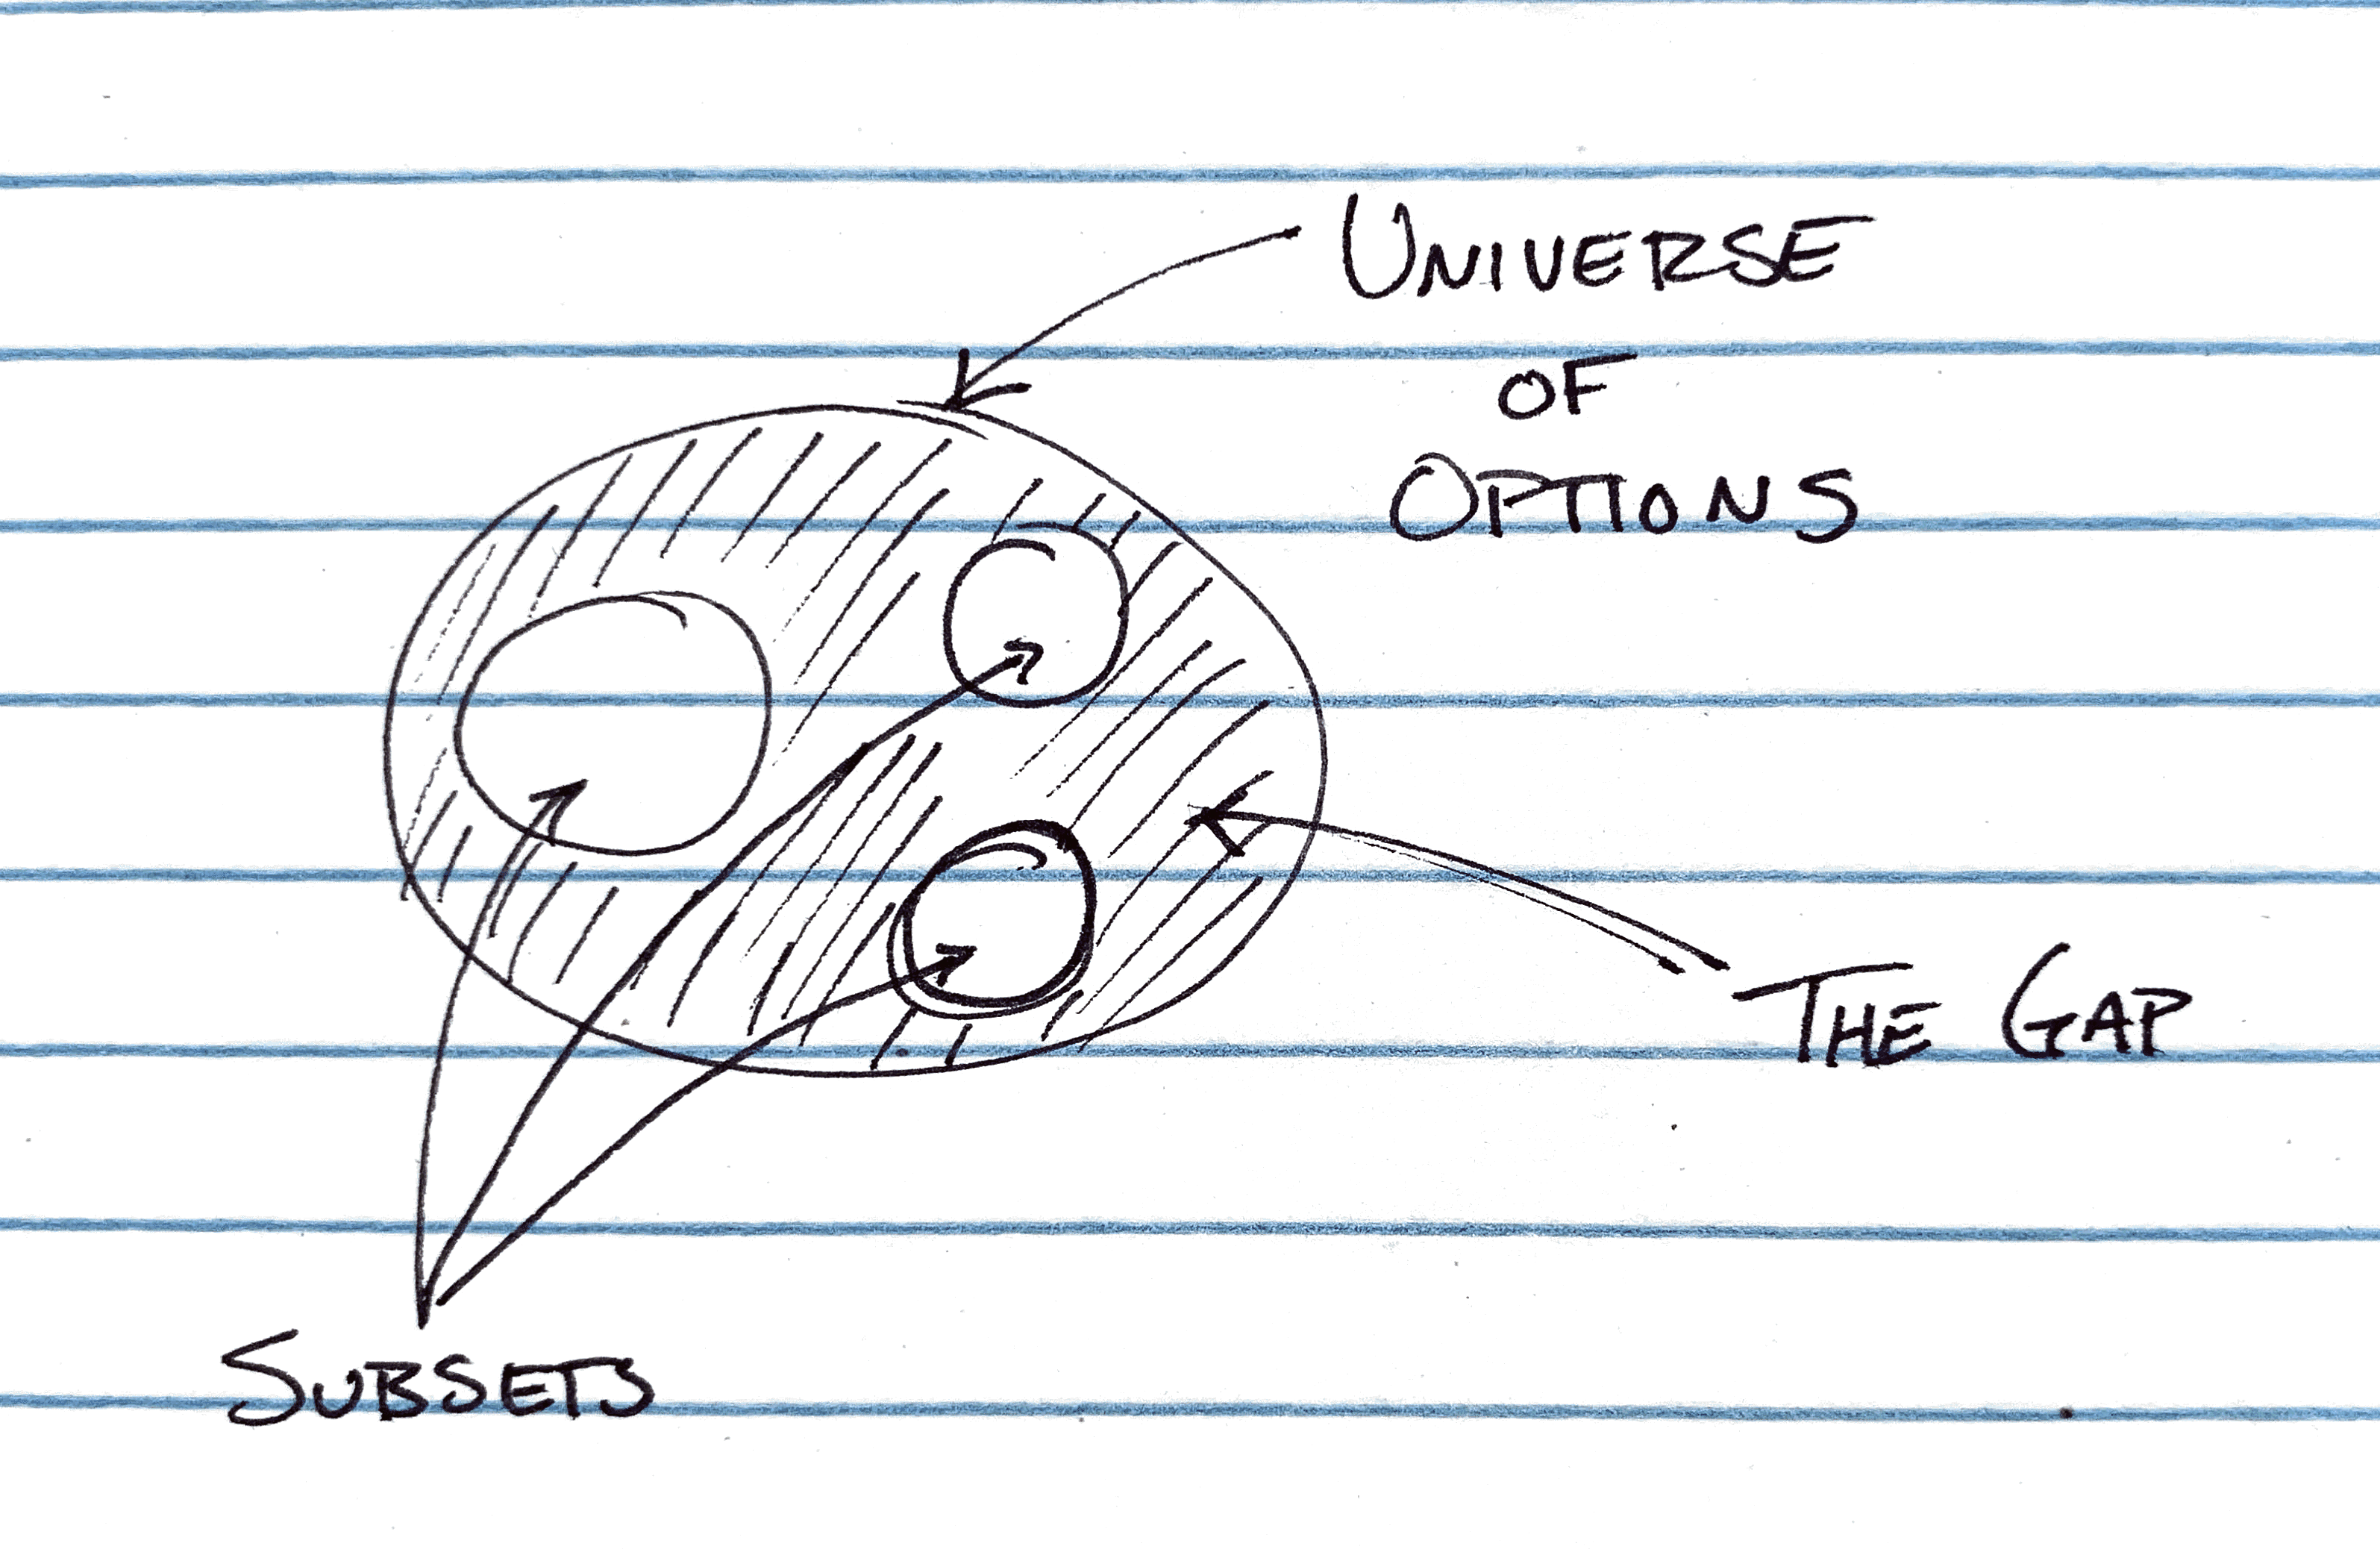 universe of options